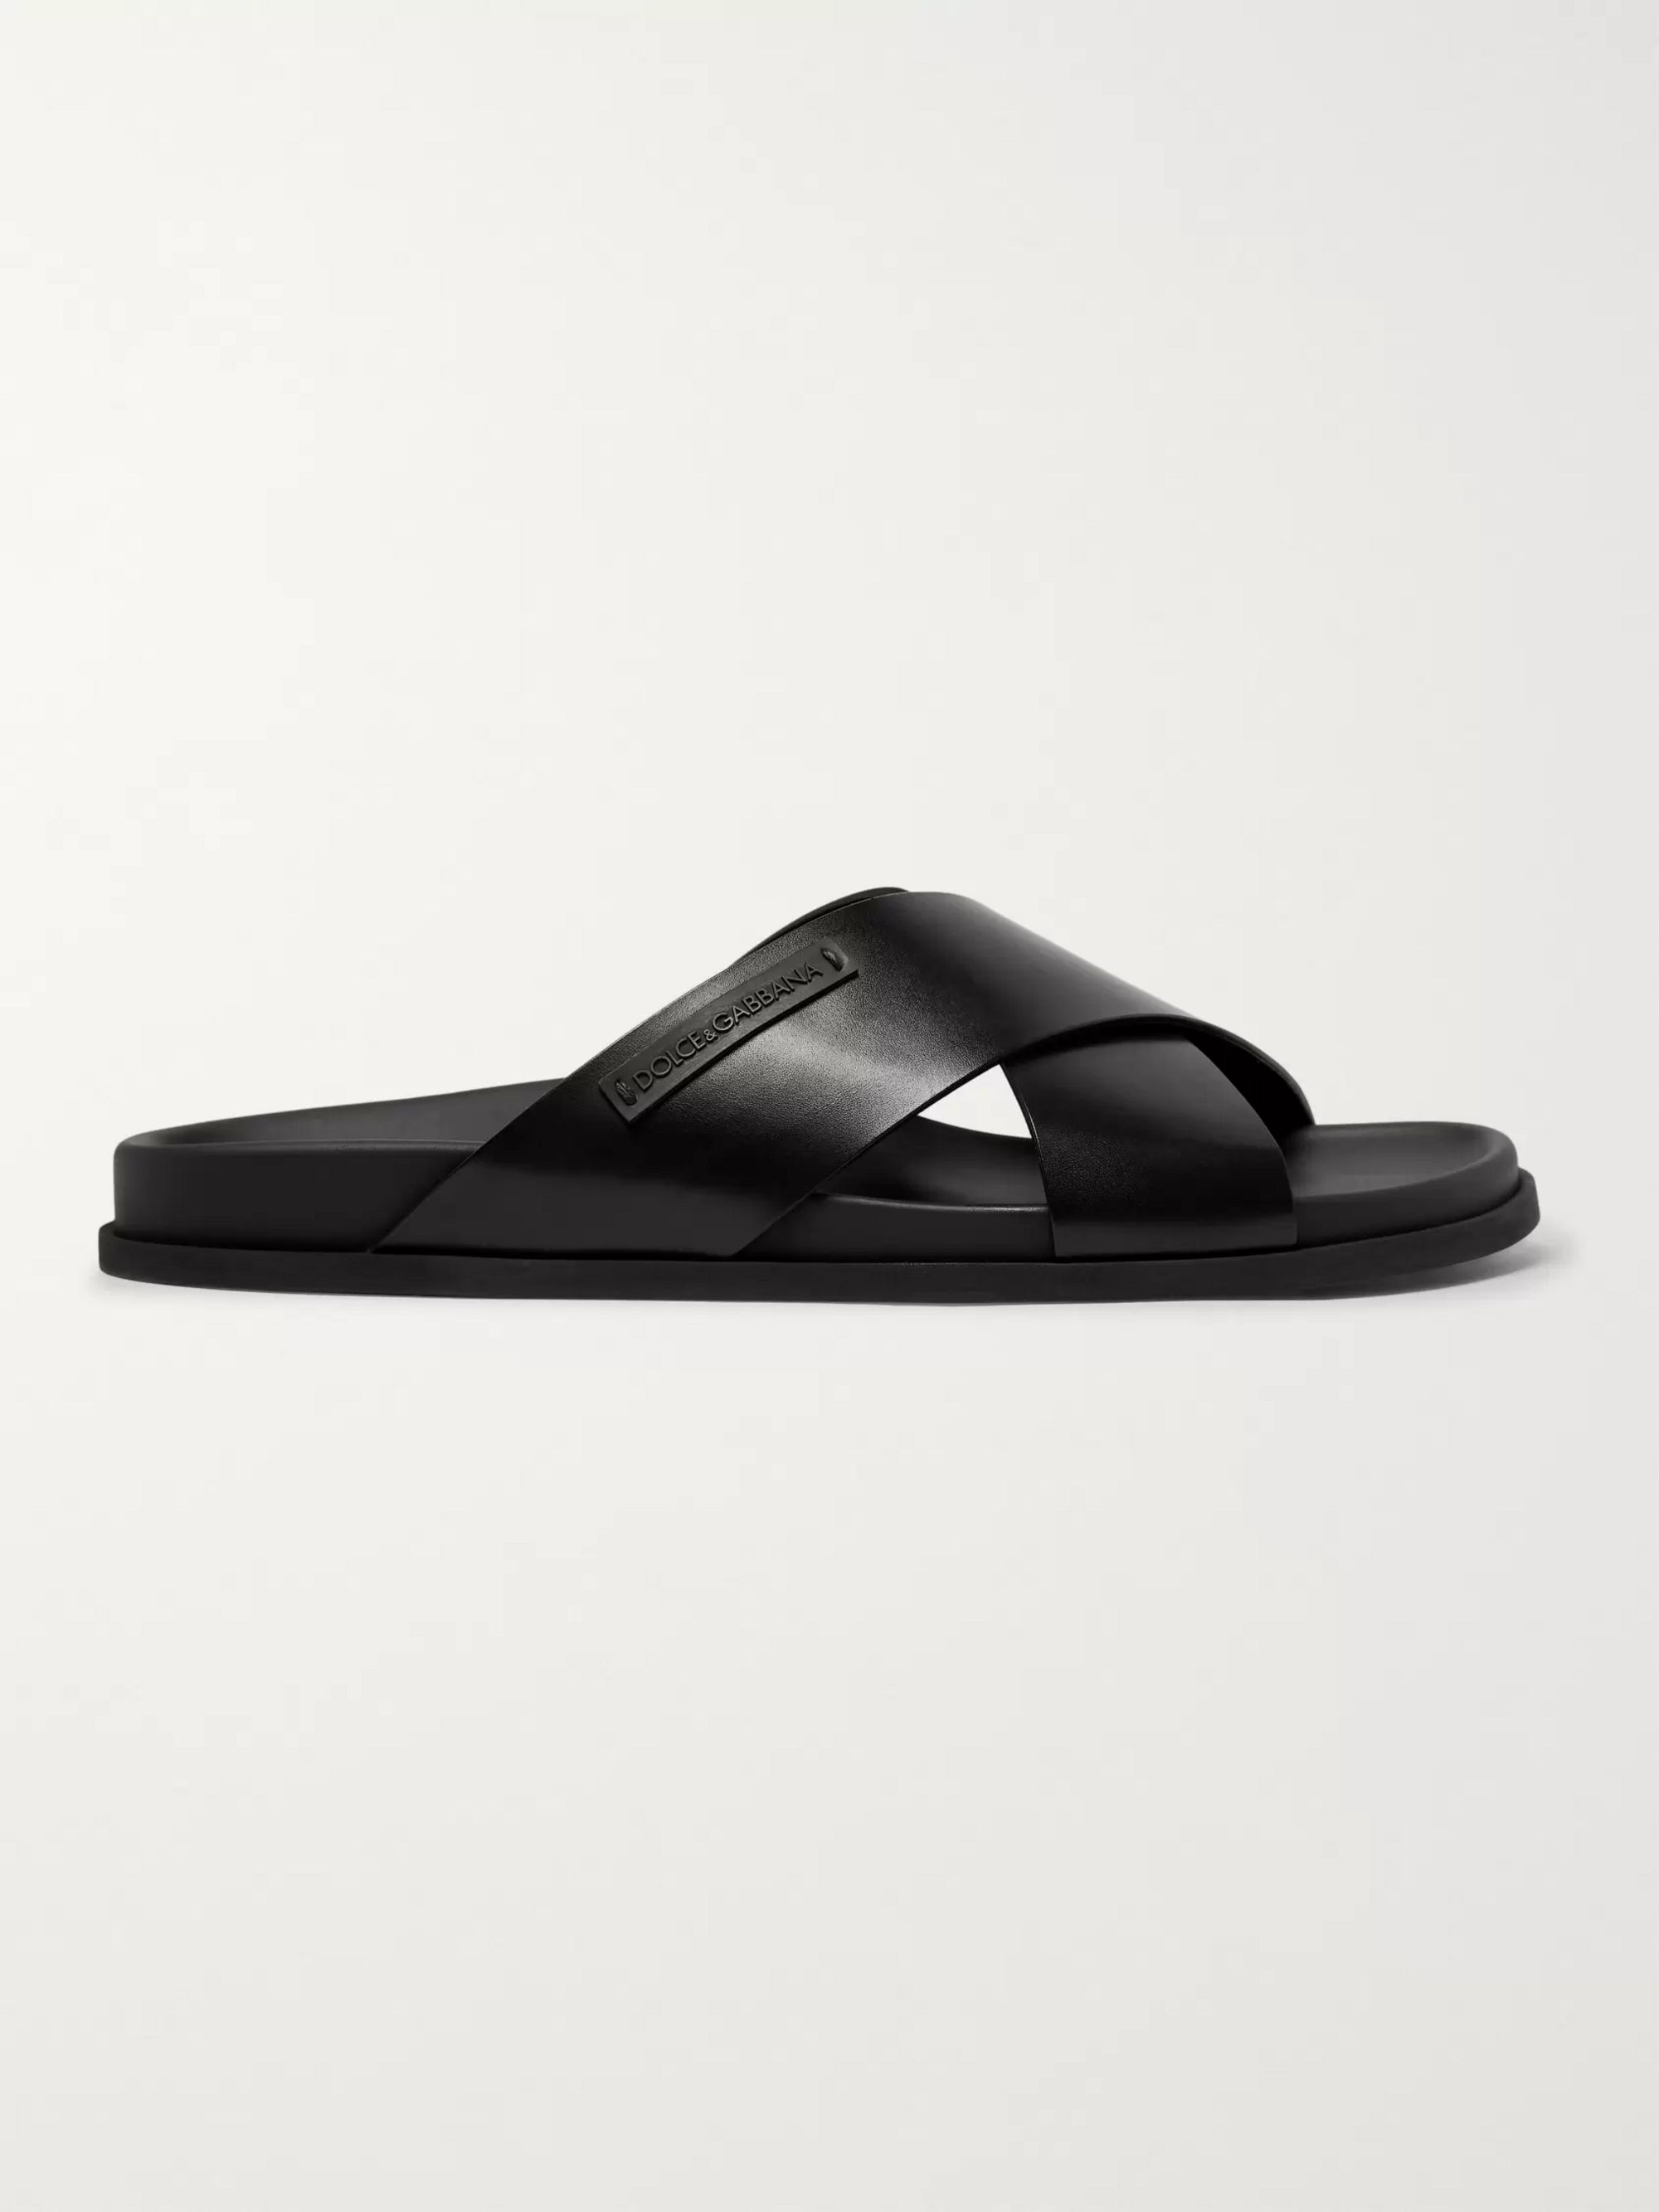 Dolce & Gabbana Logo-Appliquéd Leather Sandals